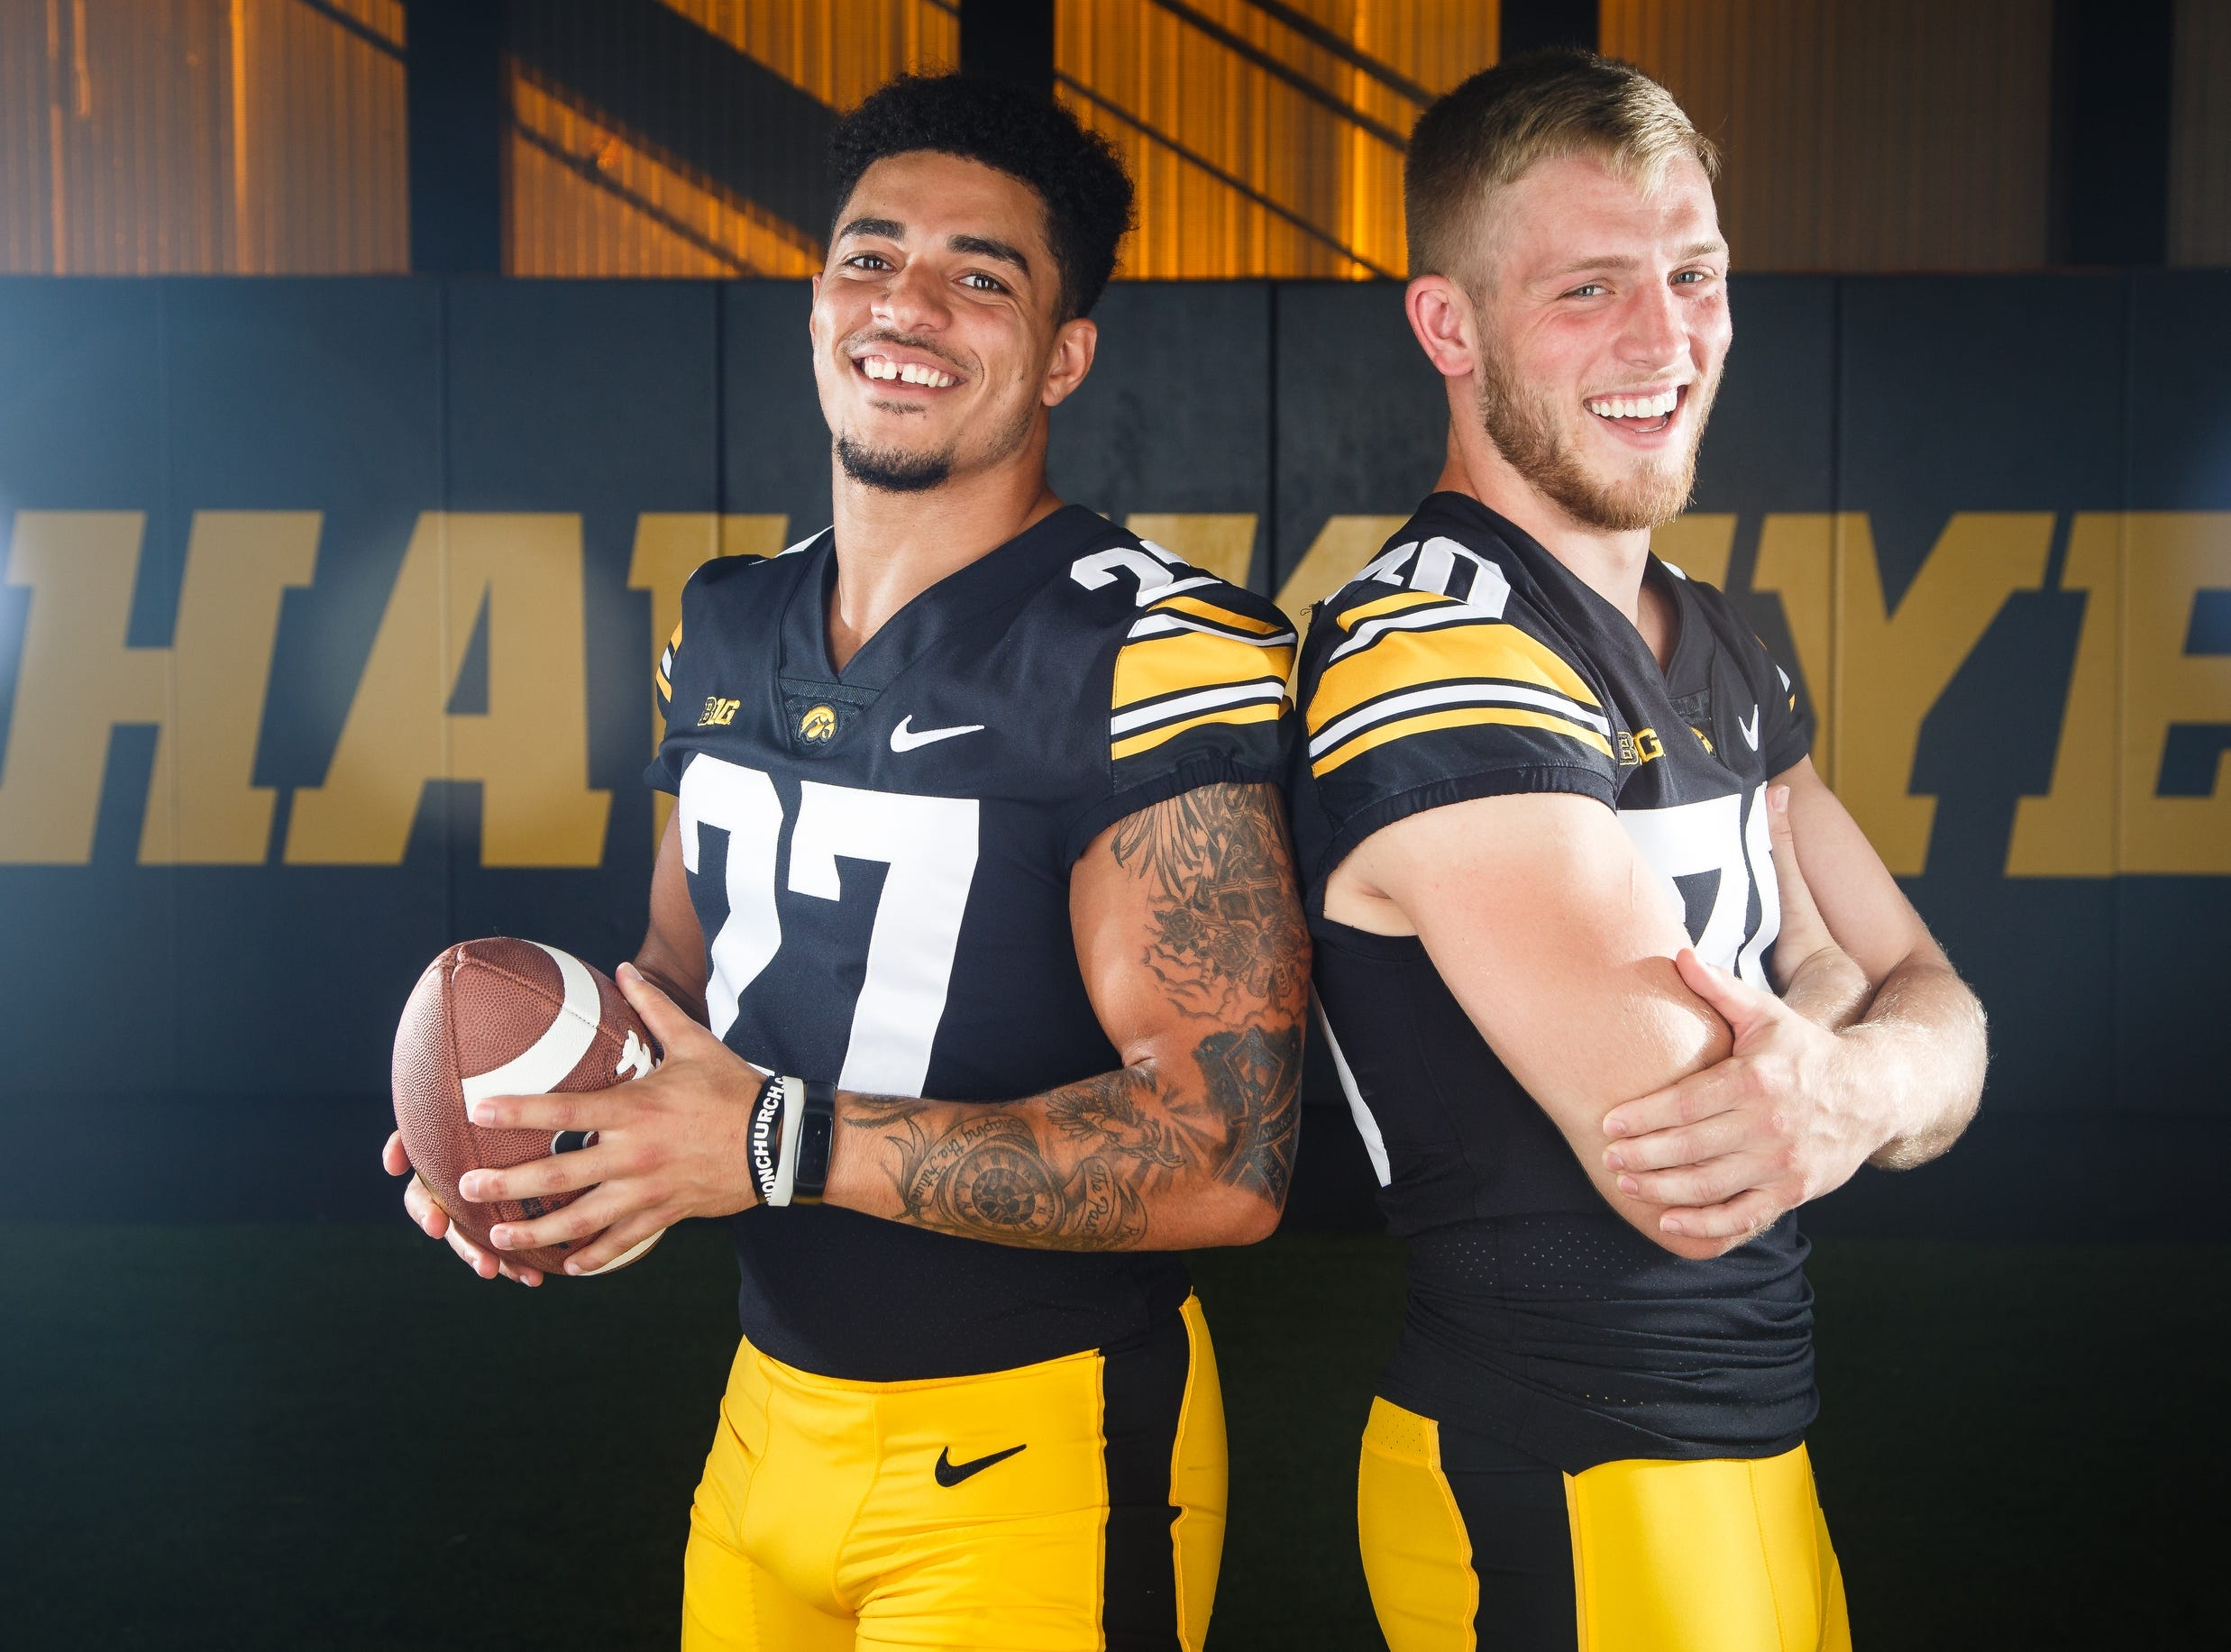 Iowa's Amani Hooker, left, and Jake Gervase, right, pose for a photo during the Iowa Football media day on Friday, Aug. 10, 2018 in Iowa City.